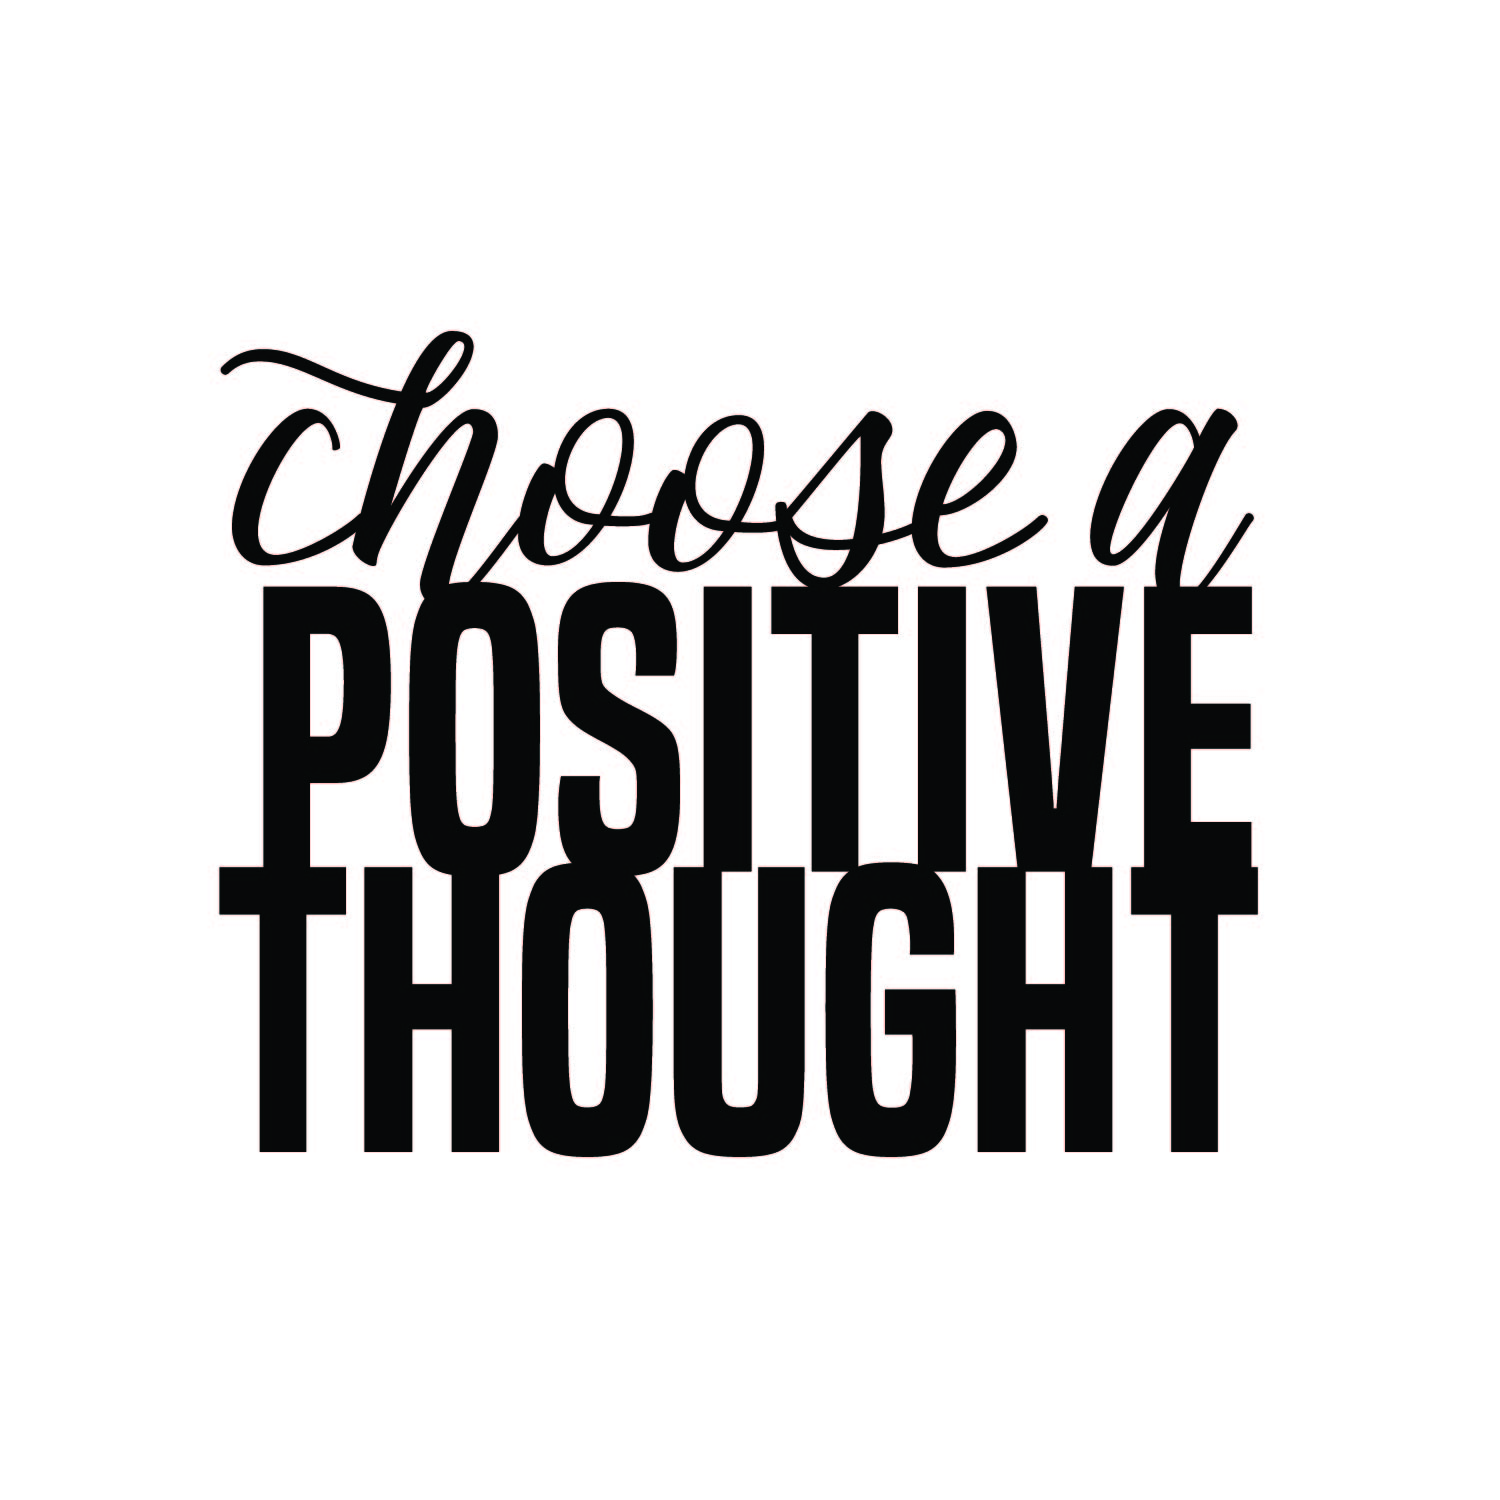 17 - Choose A Positive Thought